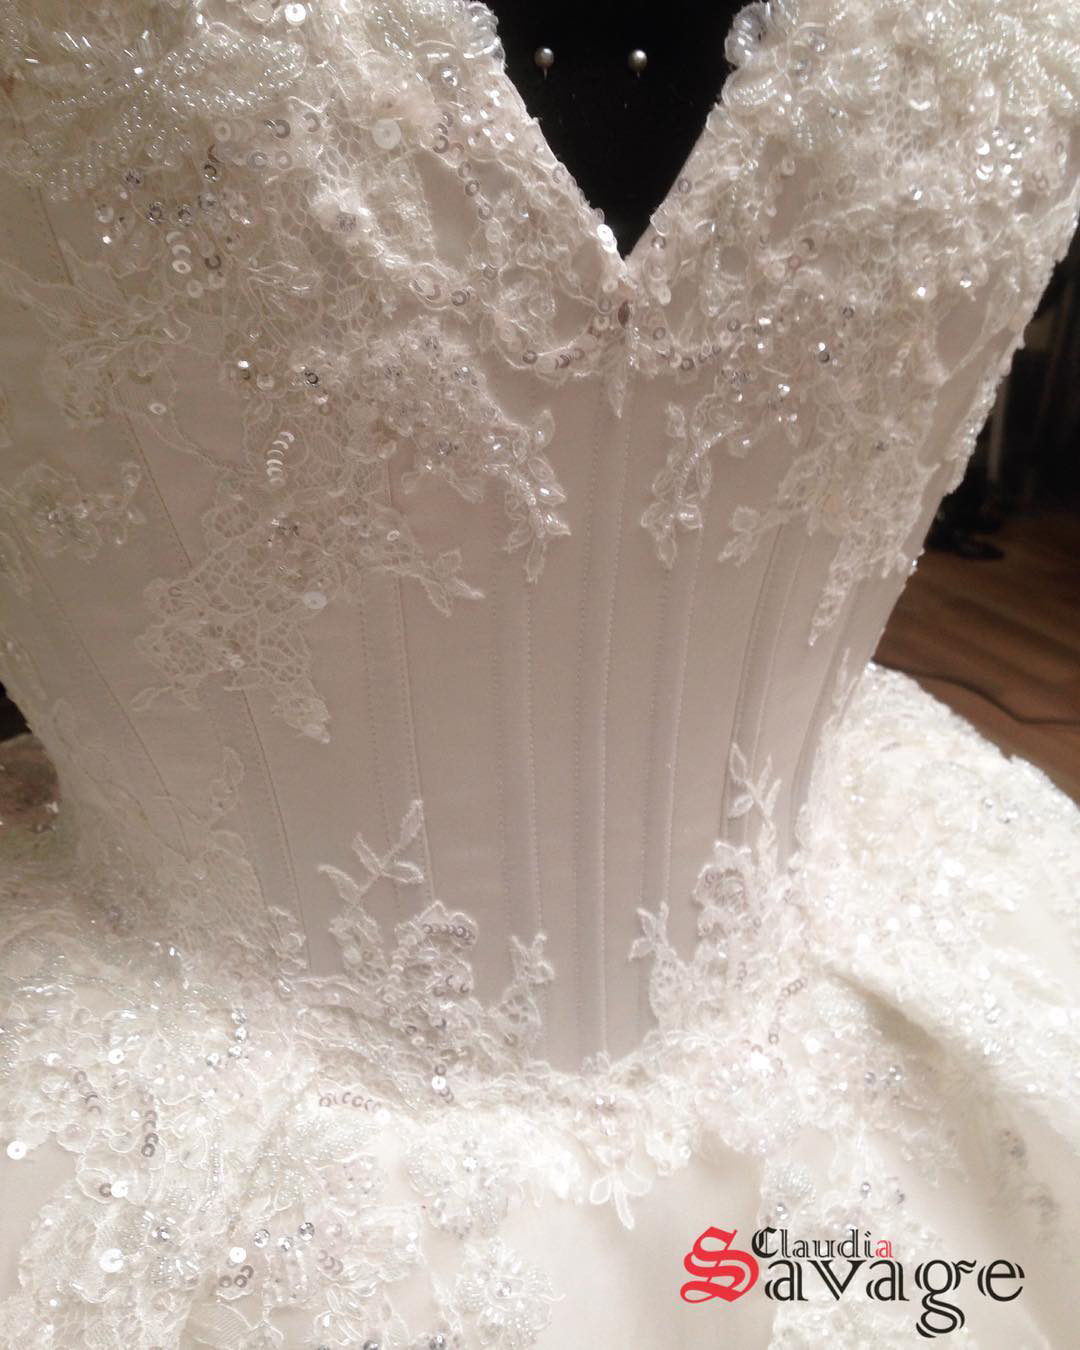 Layered lace details that covered the corset bodice and gown.